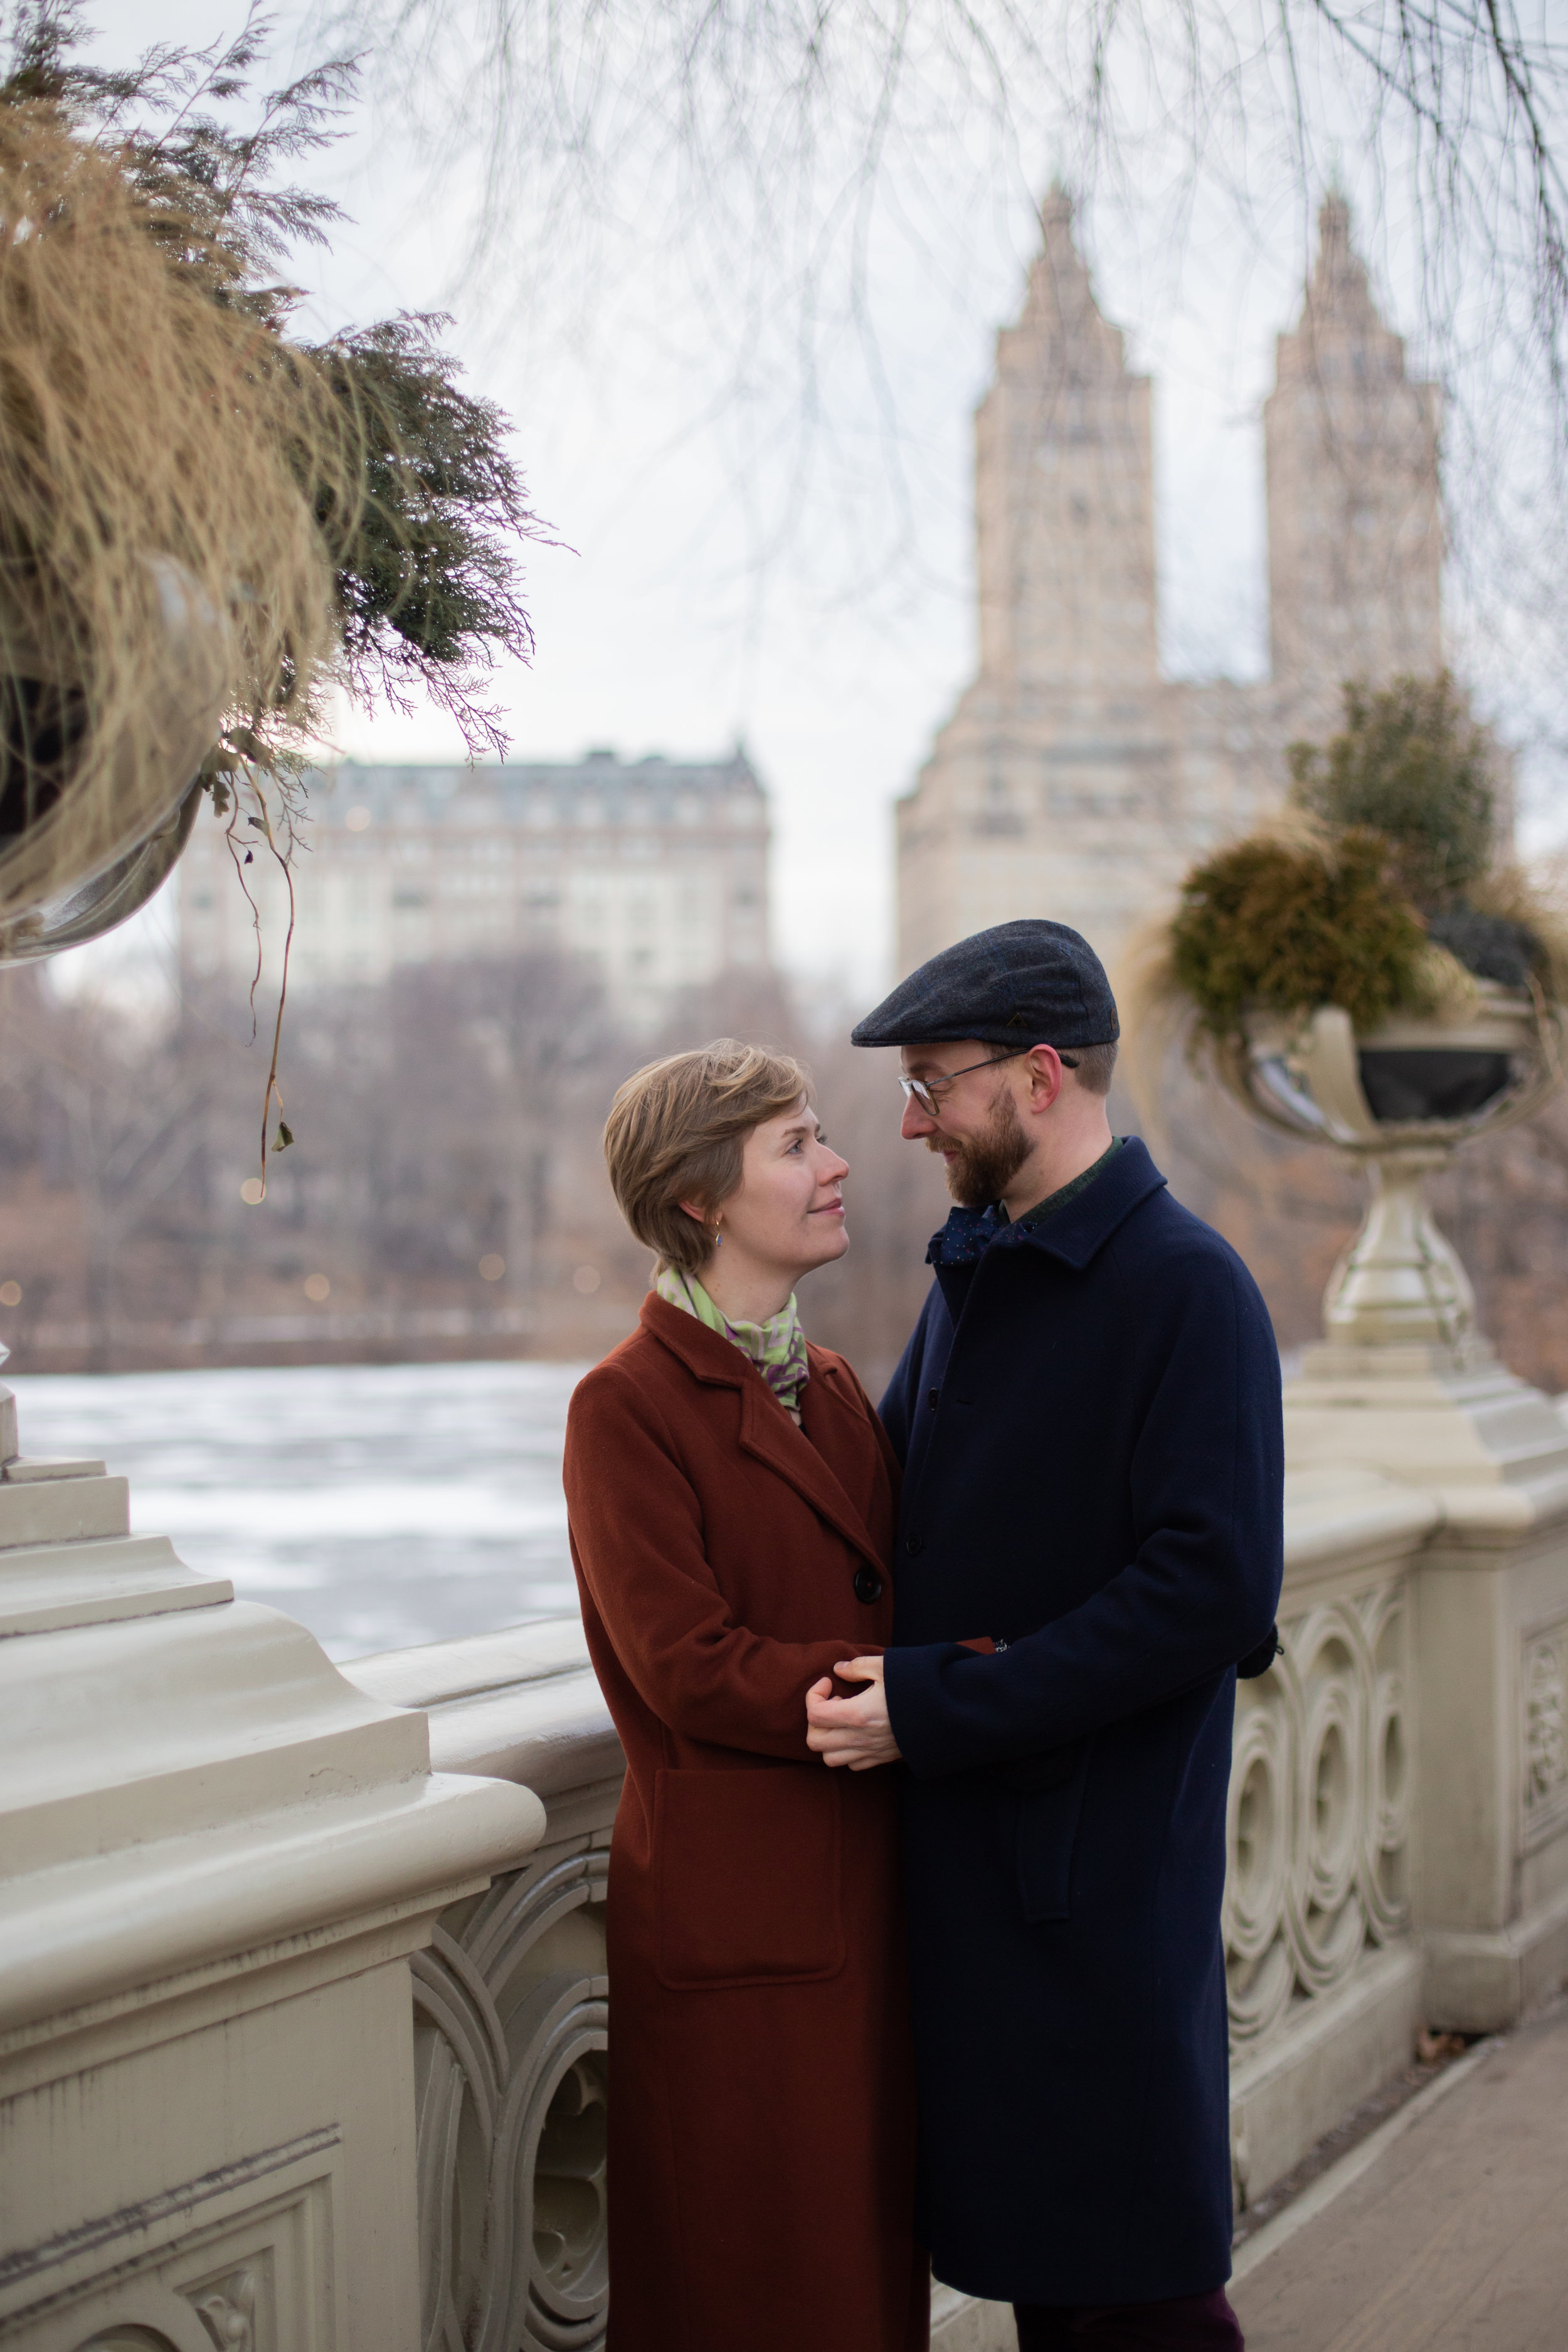 Kate-Alison-Photography-Central-Park-Winter-Engagement-Session-Paul-Chelsea-61.jpg